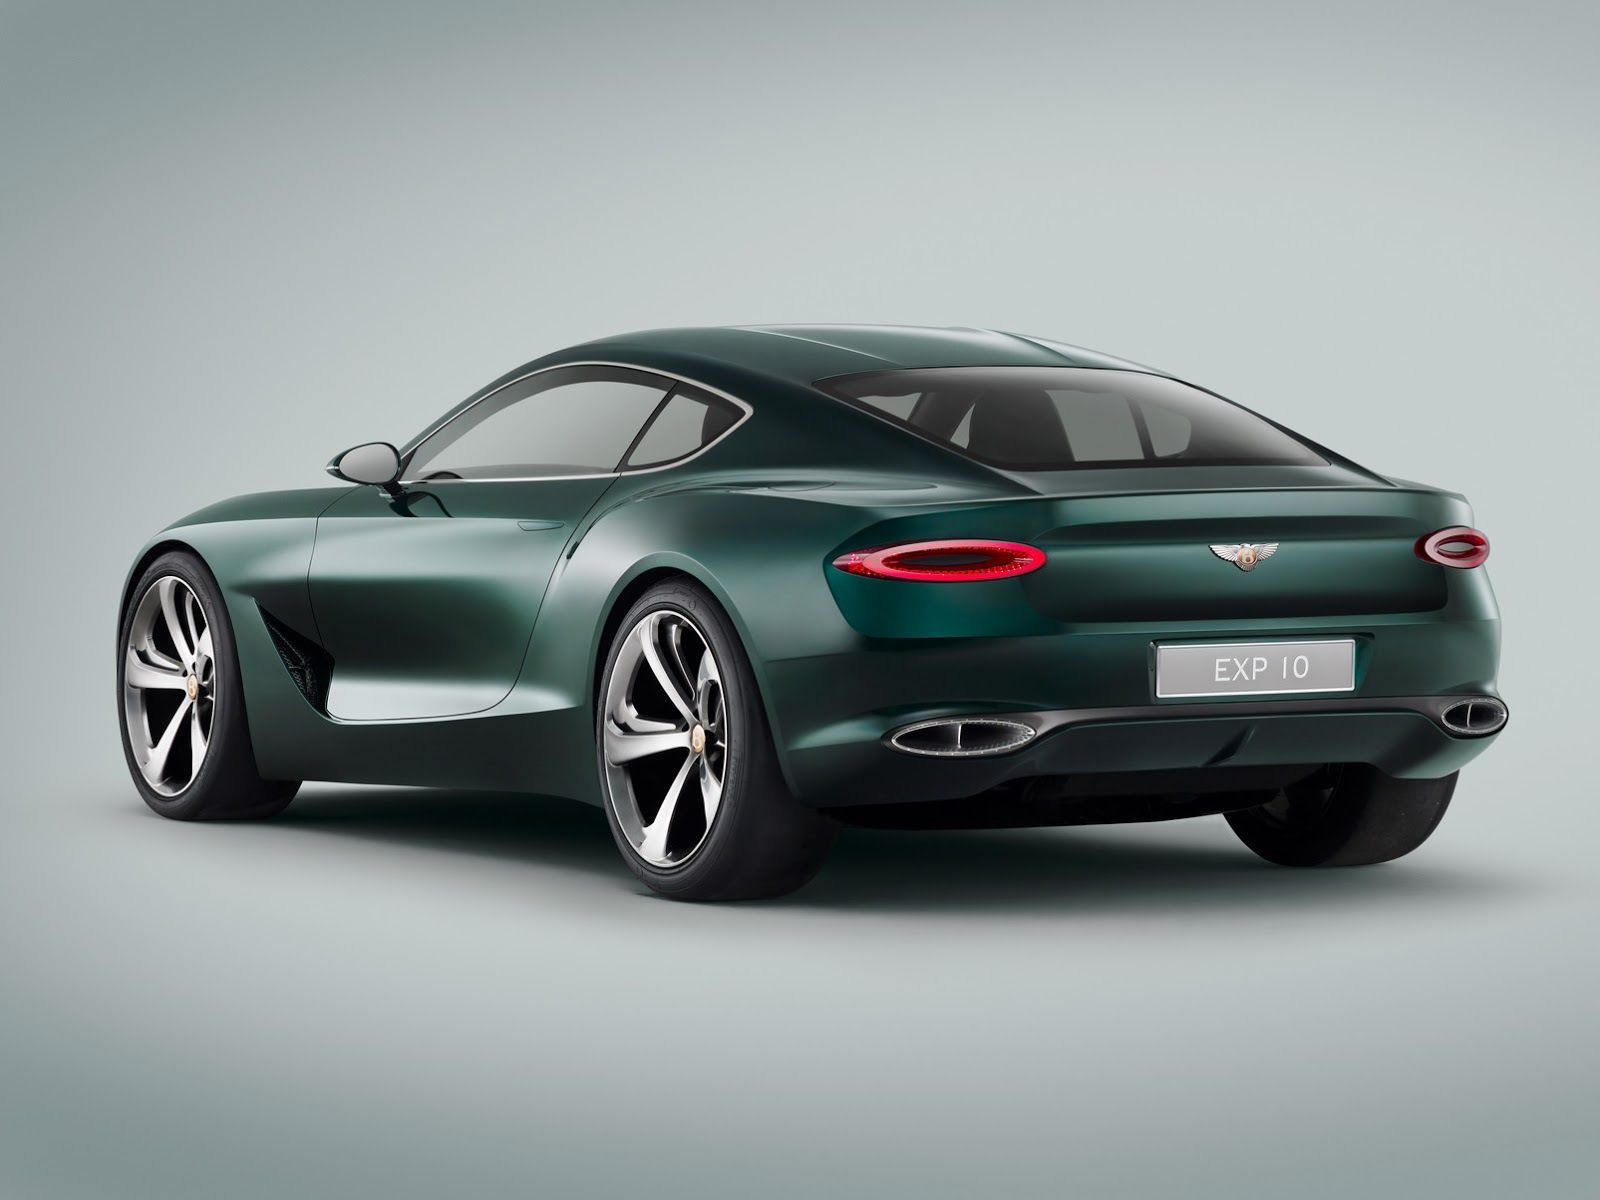 Bentley S New Exp 10 Speed 6 Sports Coupe Concept Hints At New Series Updated Carscoops Bentley Exp 10 New Sports Cars Cool Sports Cars